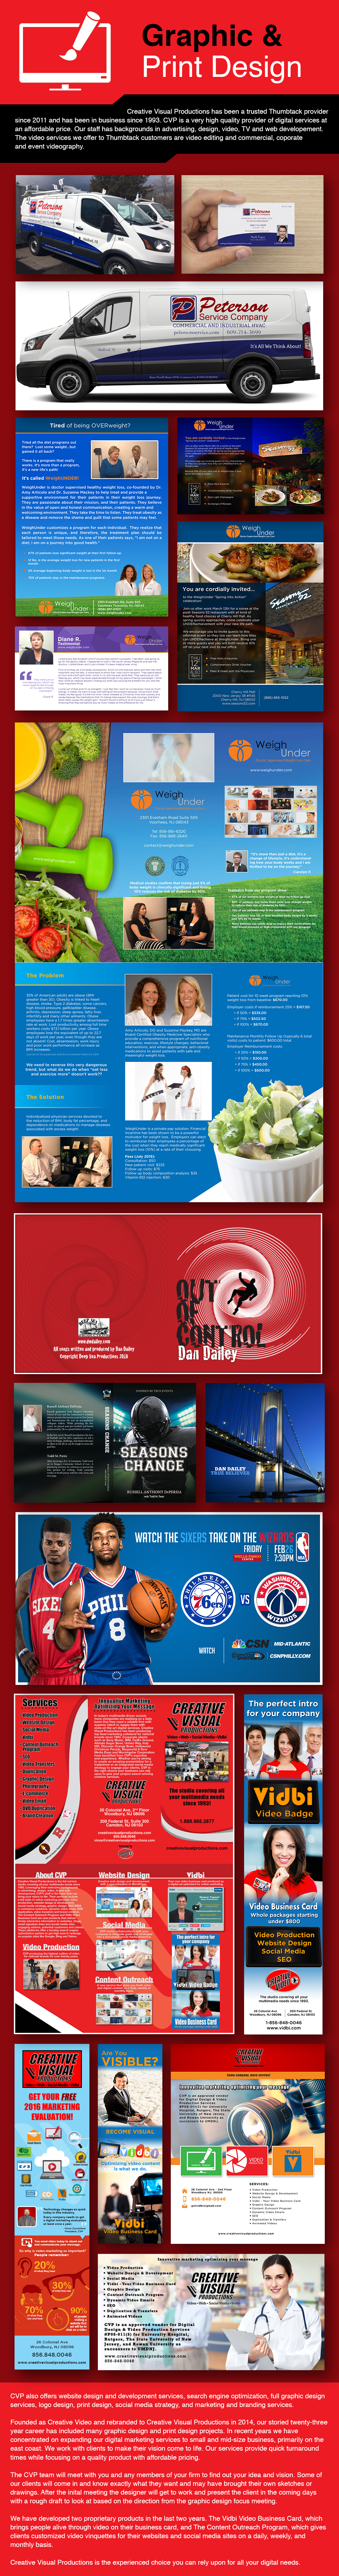 graphic design services in south jersey